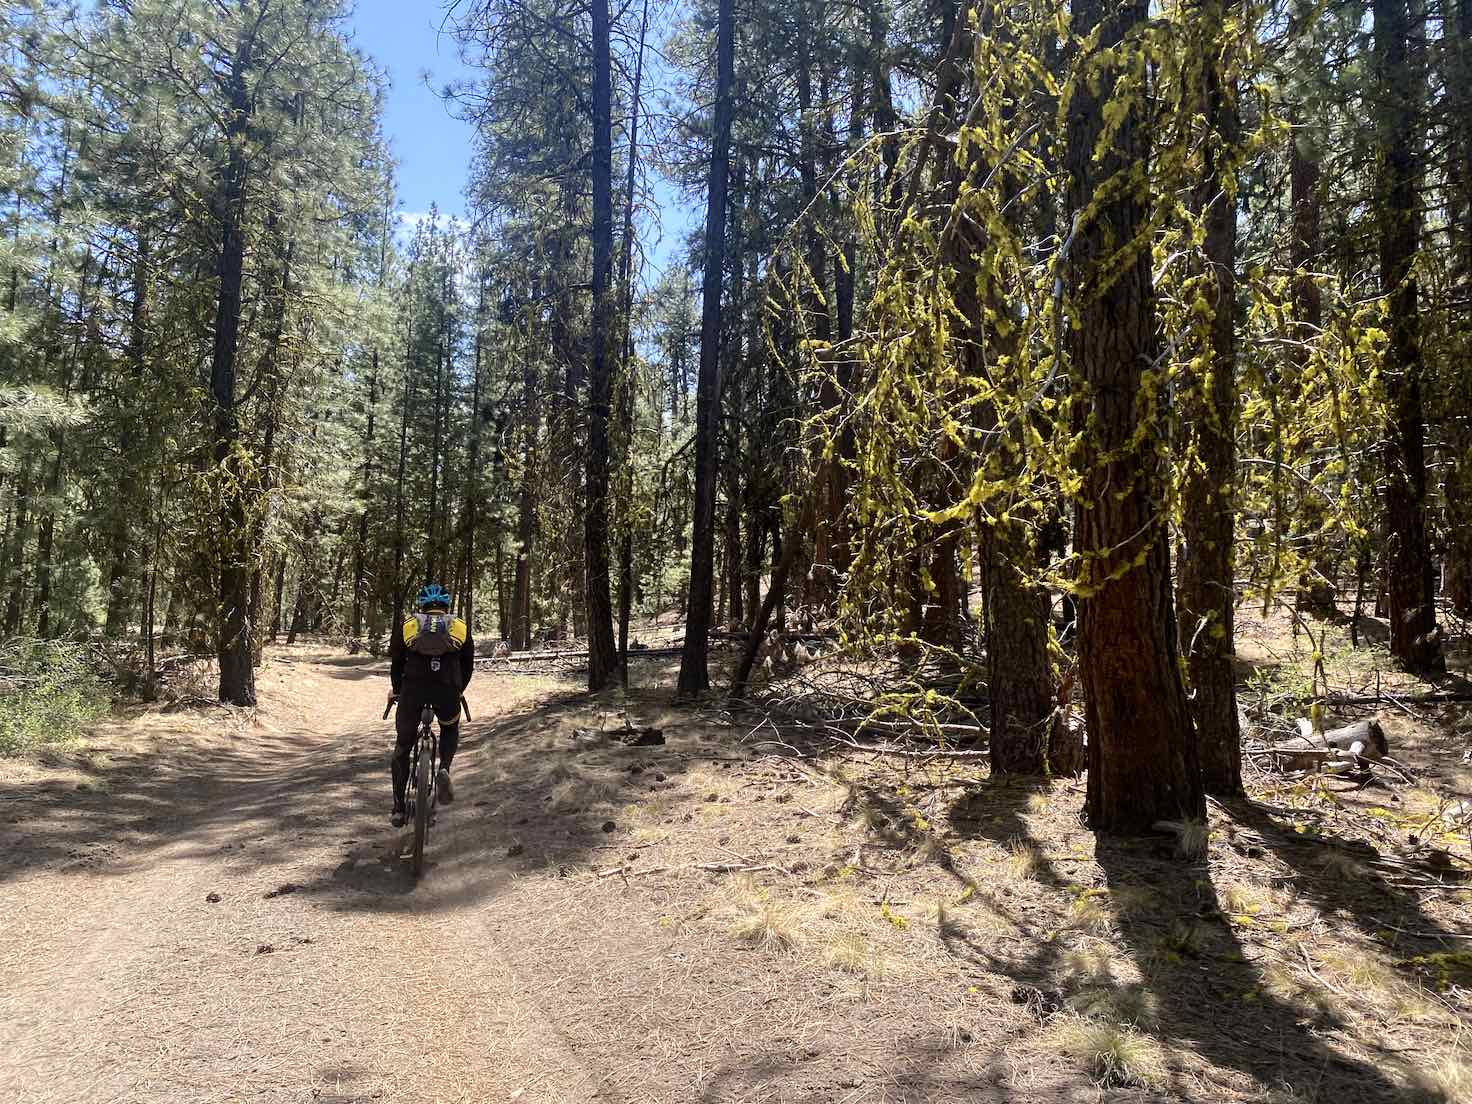 Wolf moss hanging from trees as gravel cyclist rides by.